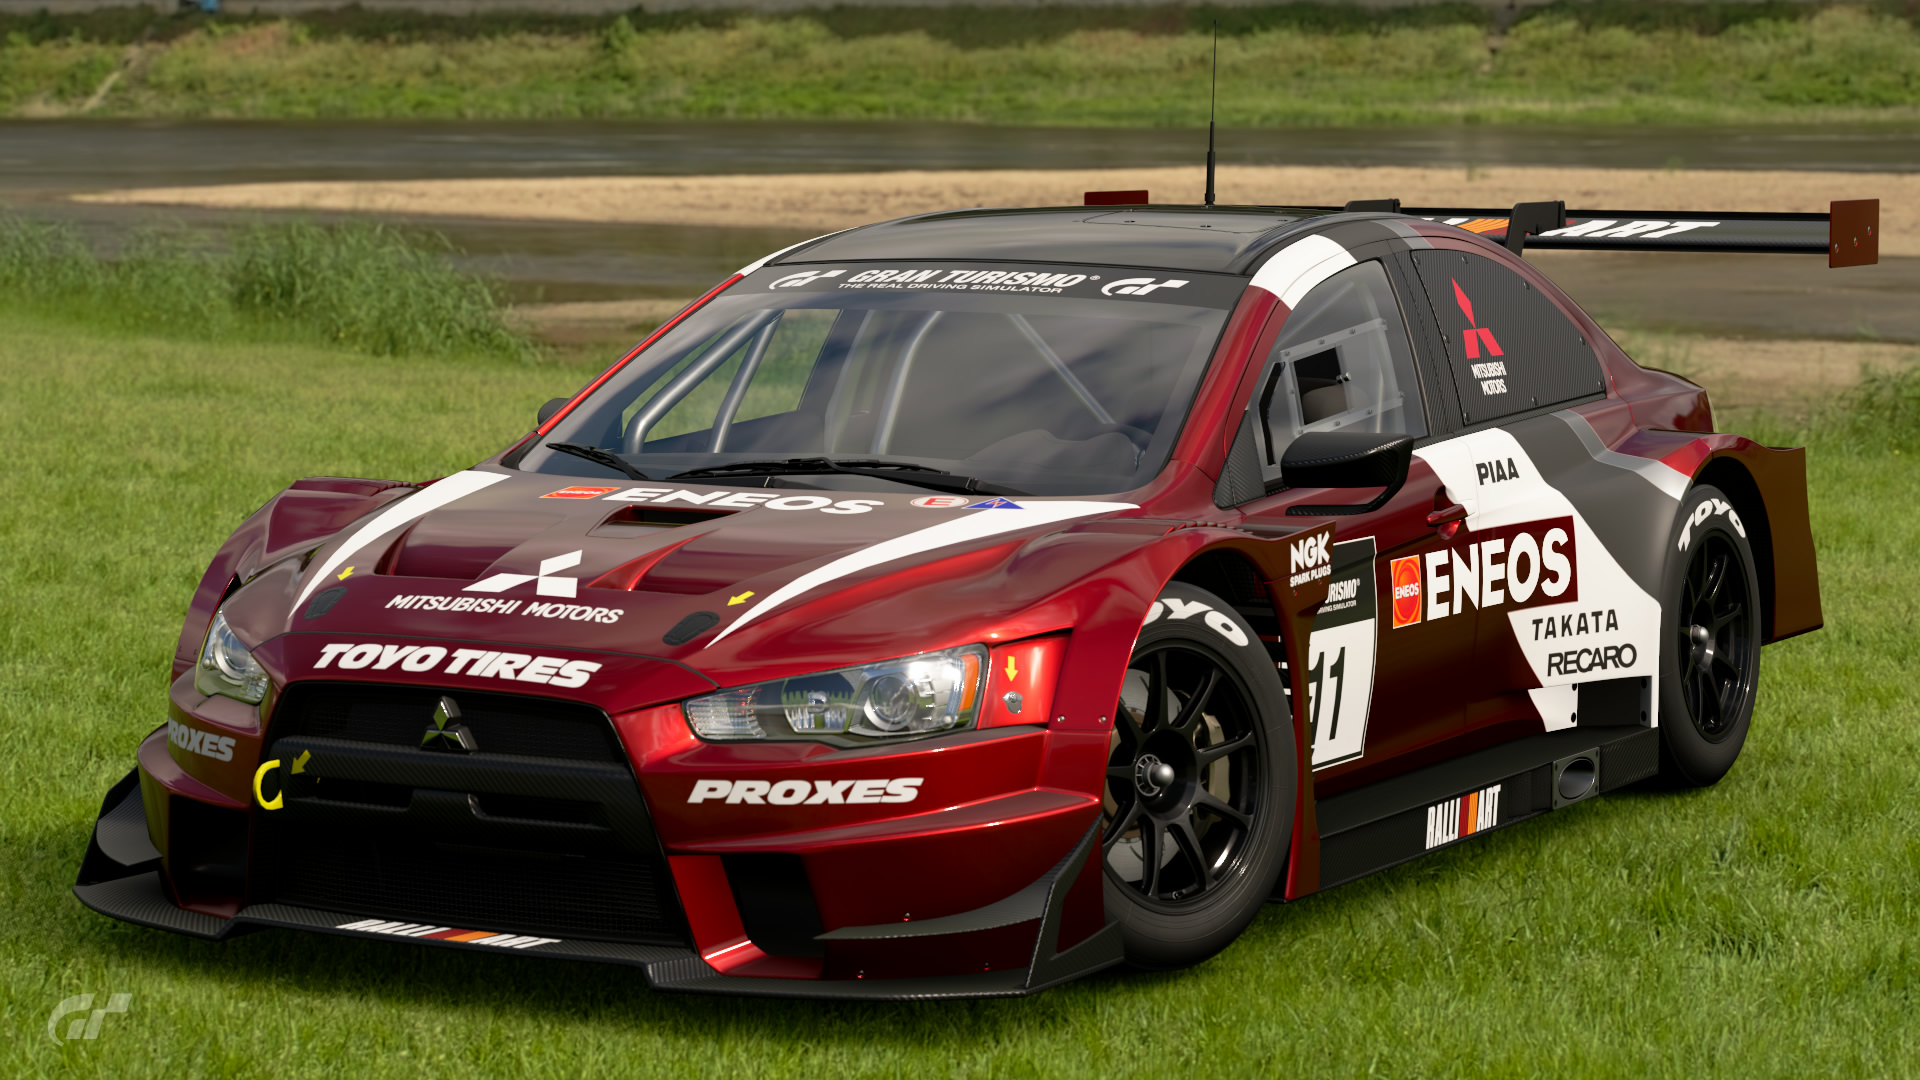 image - mitsubishi lancer evolution final edition gr.3 | gran